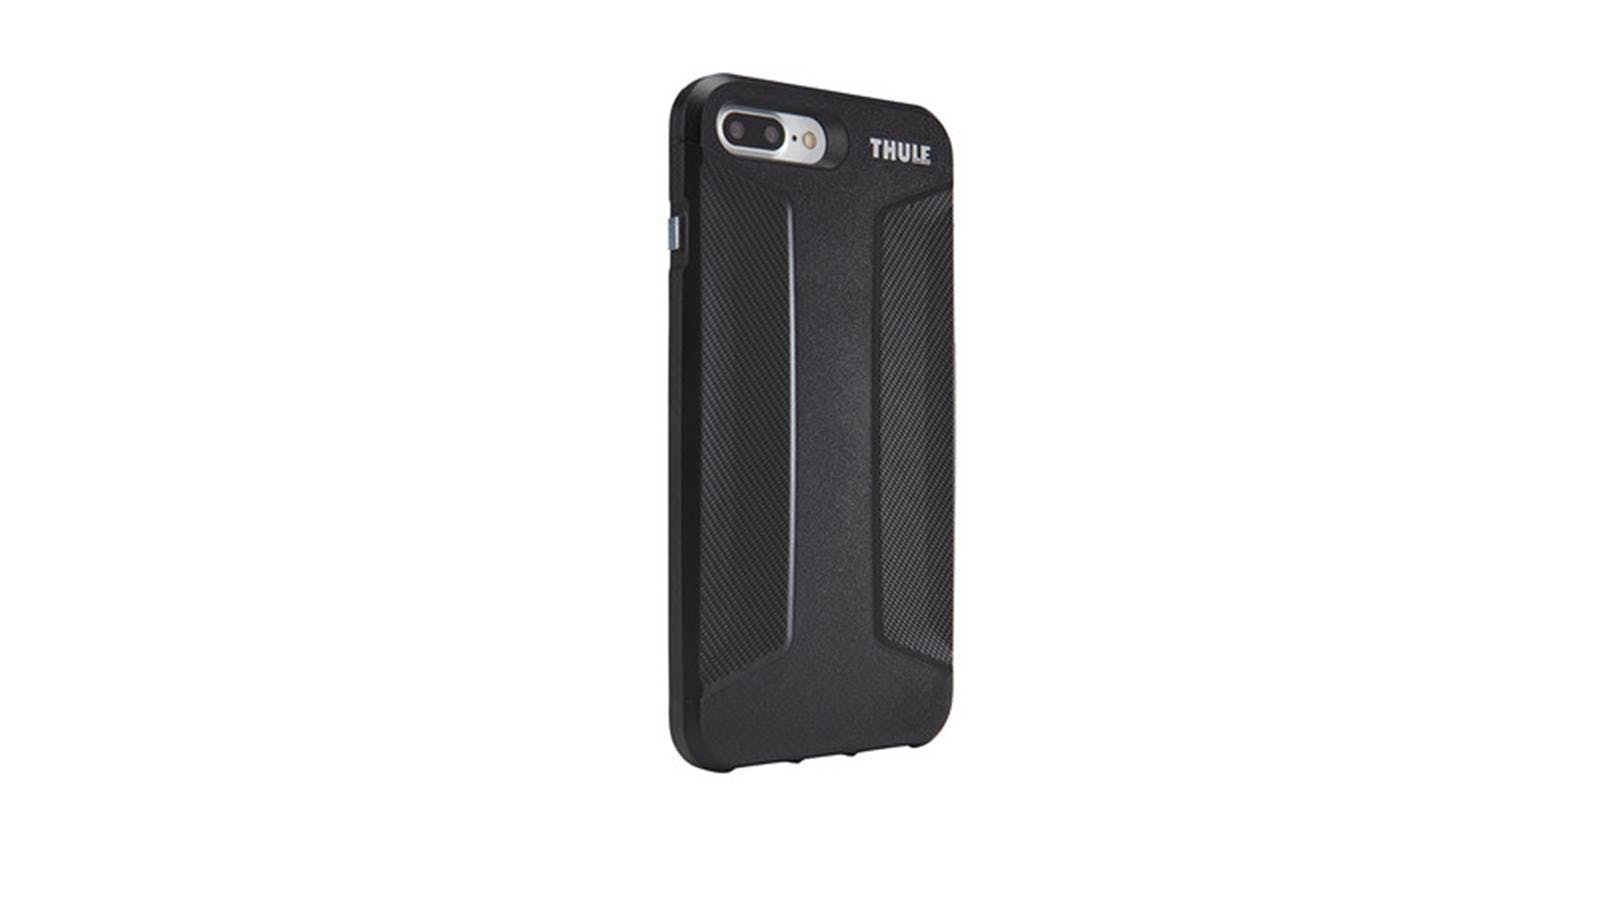 buy popular dda90 70627 Home :: Smart Tech & Phones :: Phone Accessories :: Cases & Covers :: Thule  Atmos X3 TL-TAIE3127 iPhone 7 Plus Case - Black